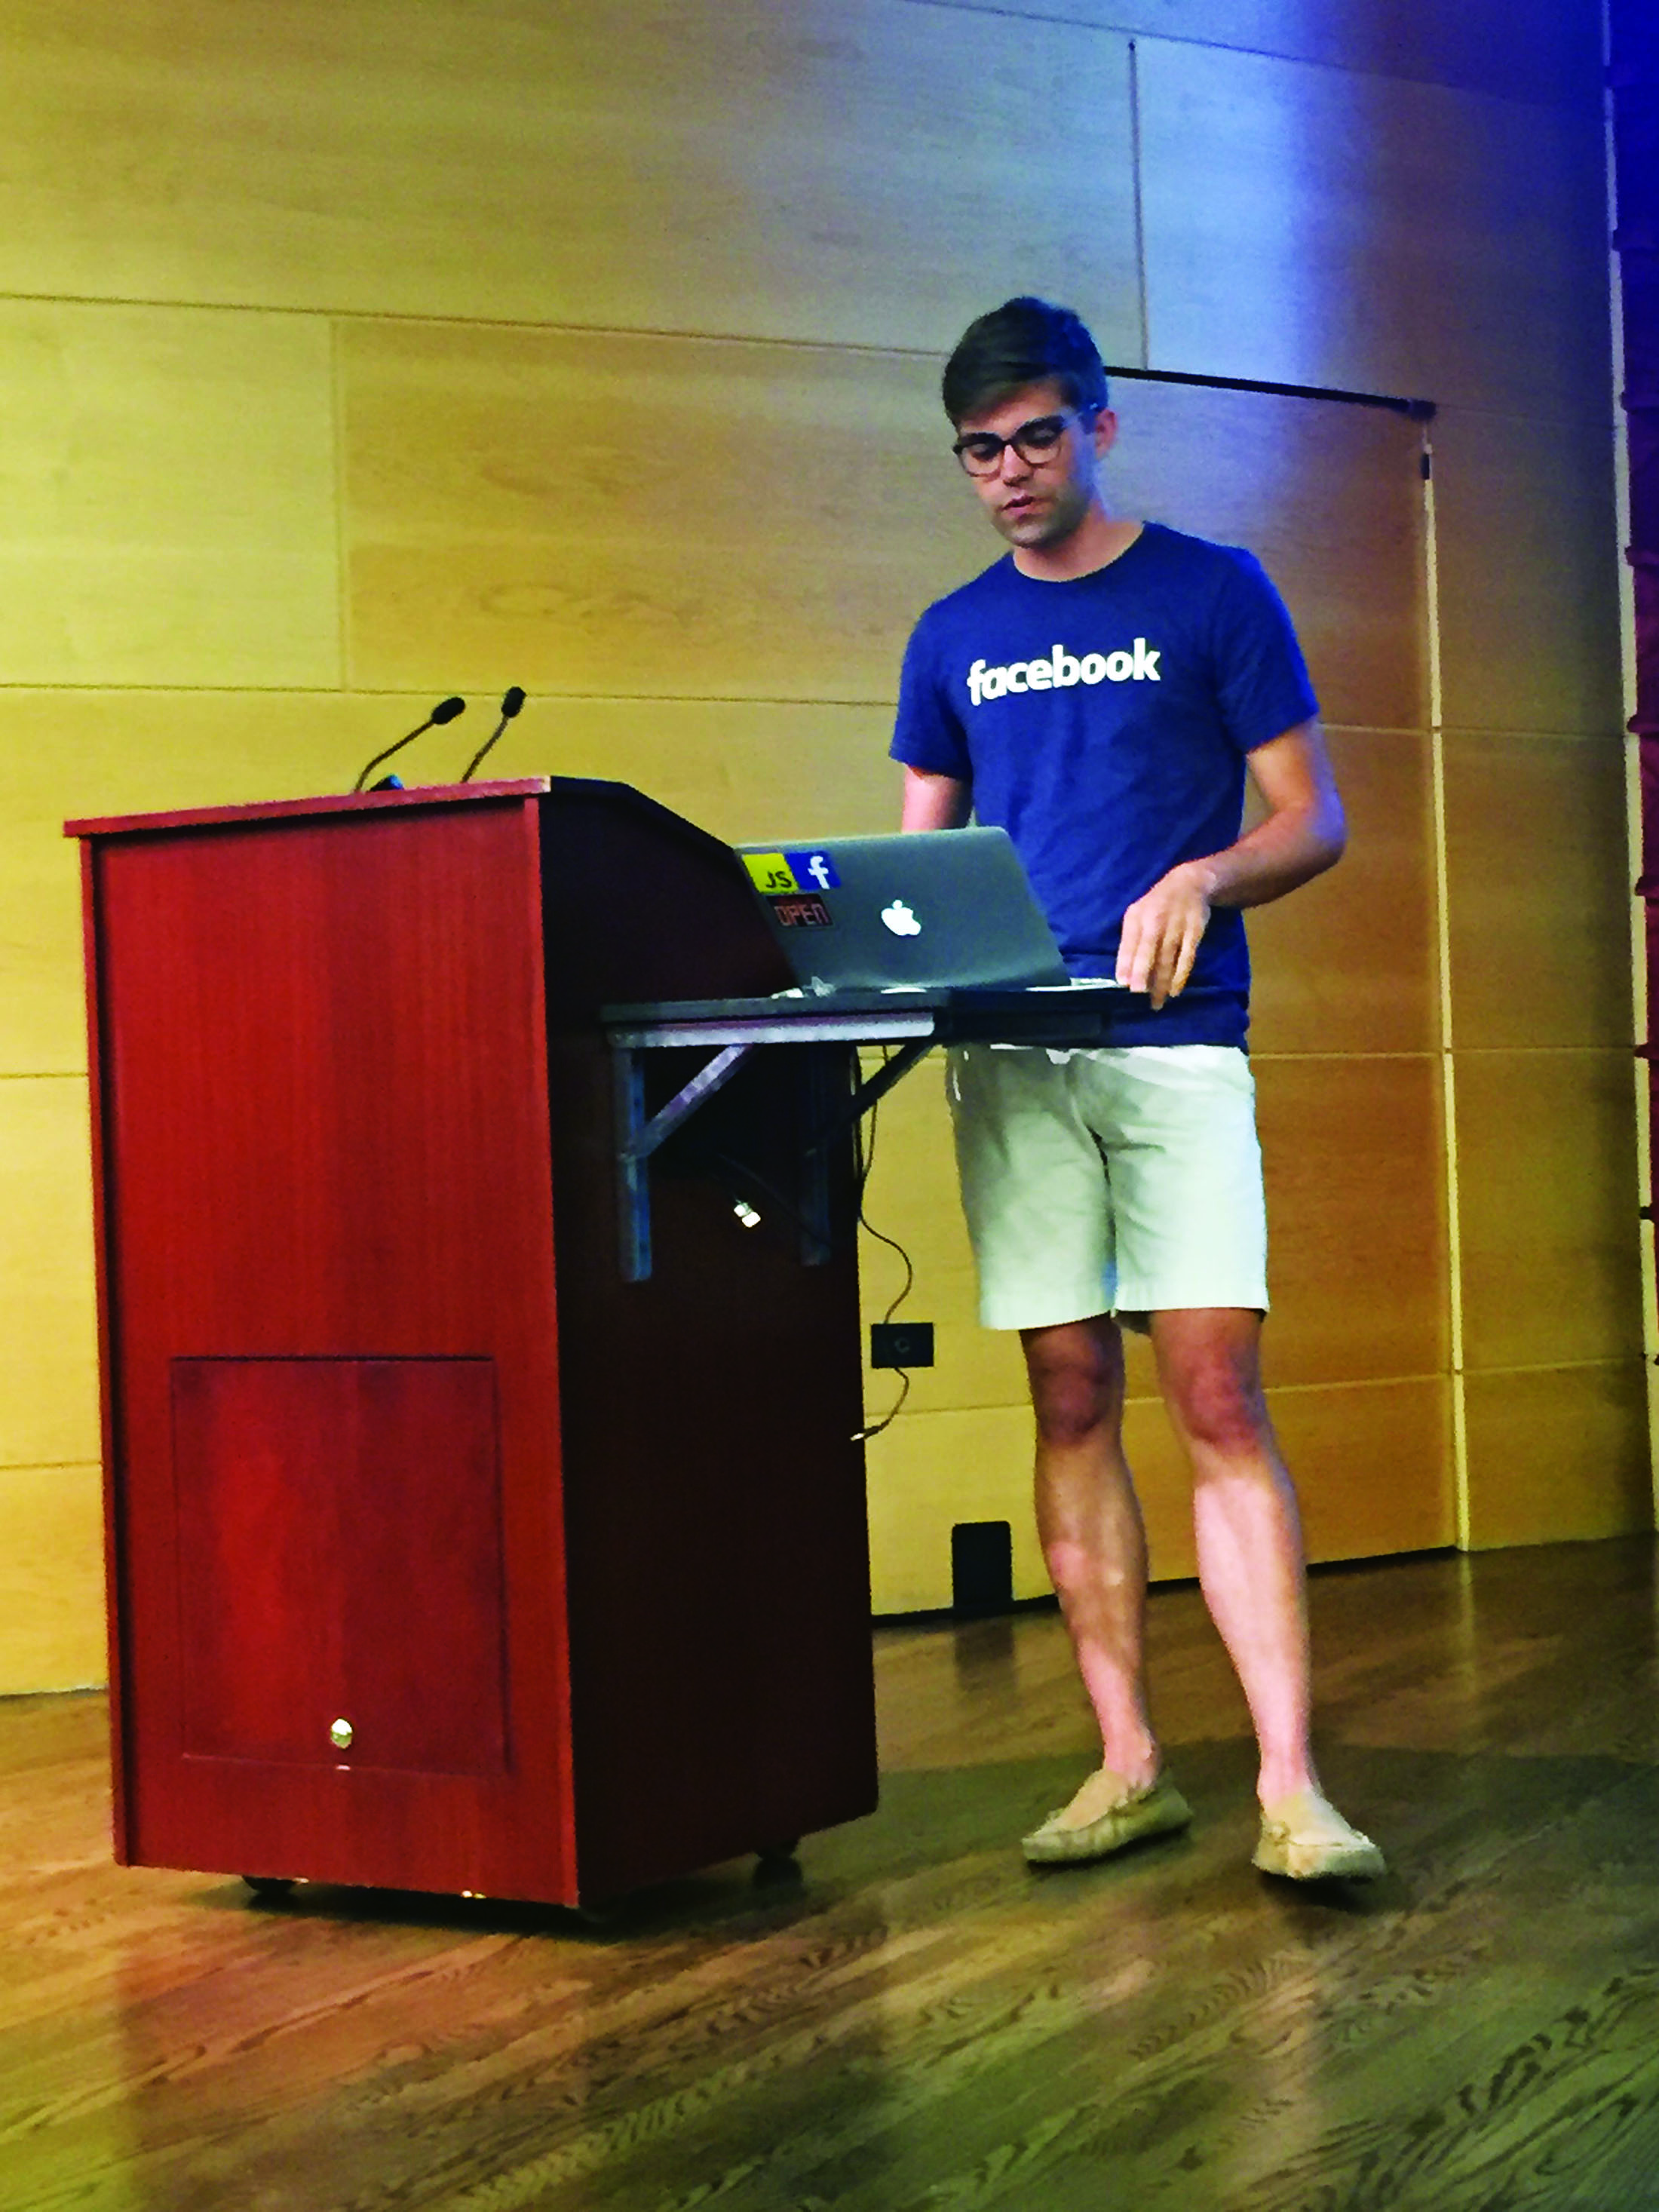 Patrick Burtchaell speaks at Loyola's Design Forum about his Facebook internship on Oct. 26 2016. He discussed his application process, Facebook's design dynamics, and gave advice to fellow students. Photo credit: Caleb Beck